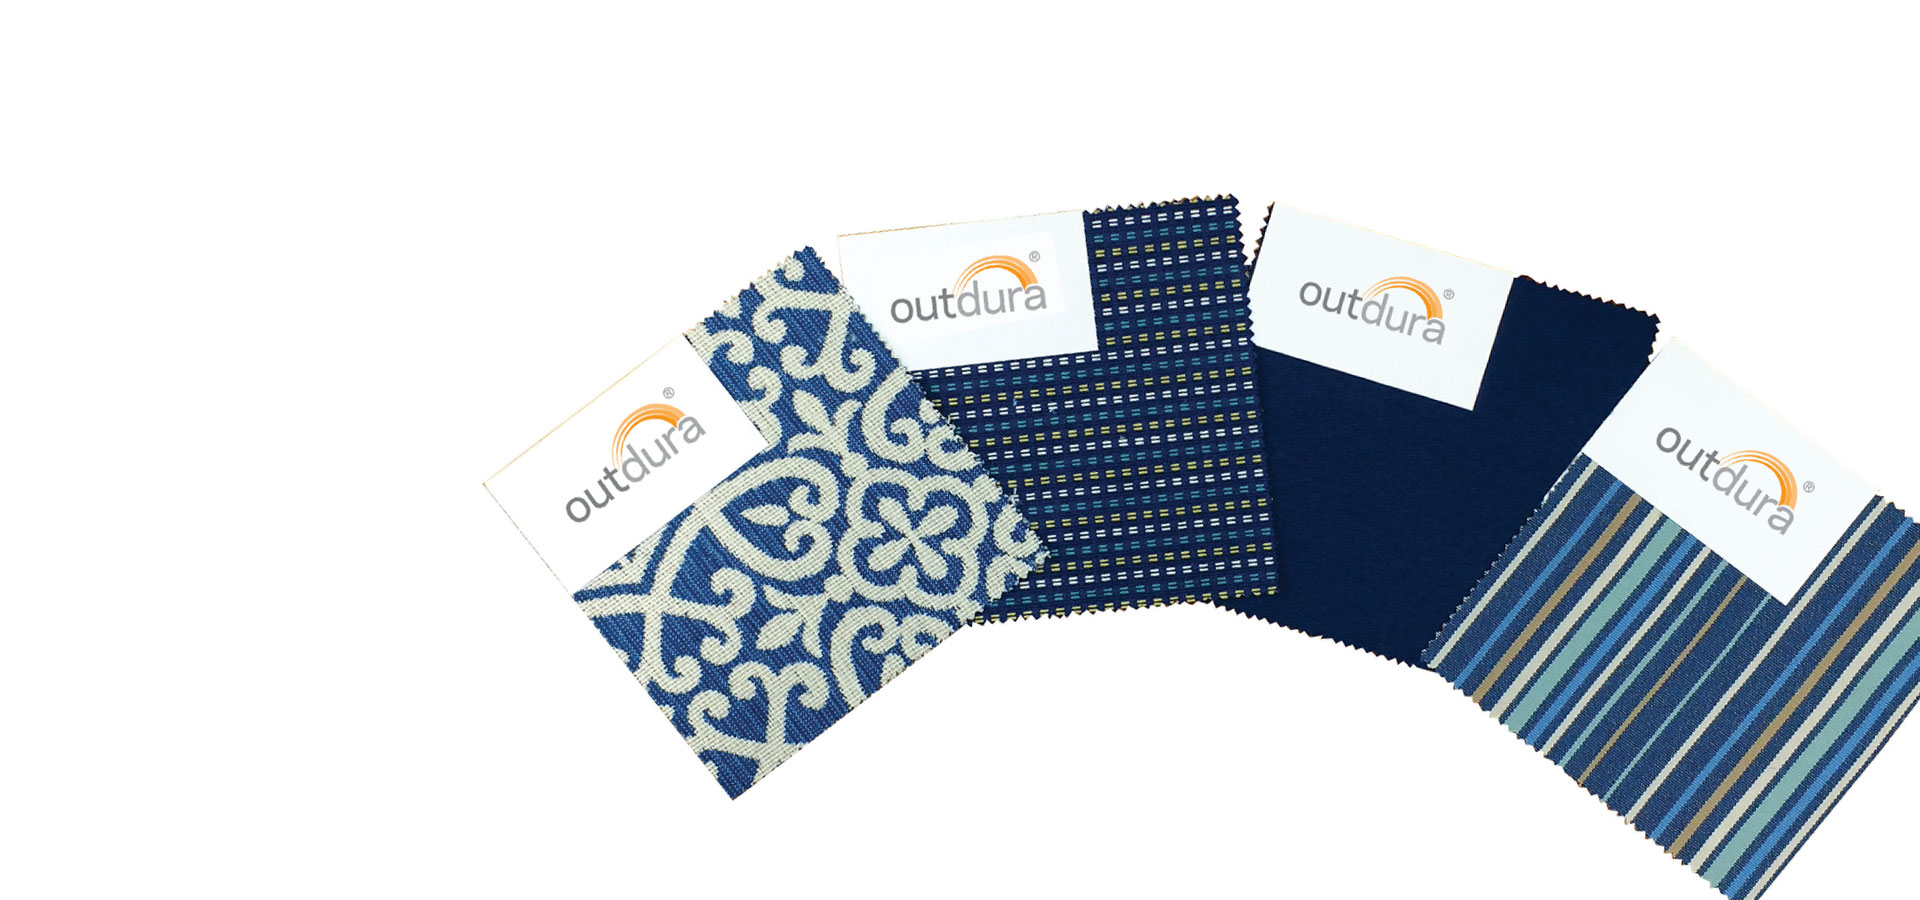 Order a swatch of any of Outdura's fabrics.